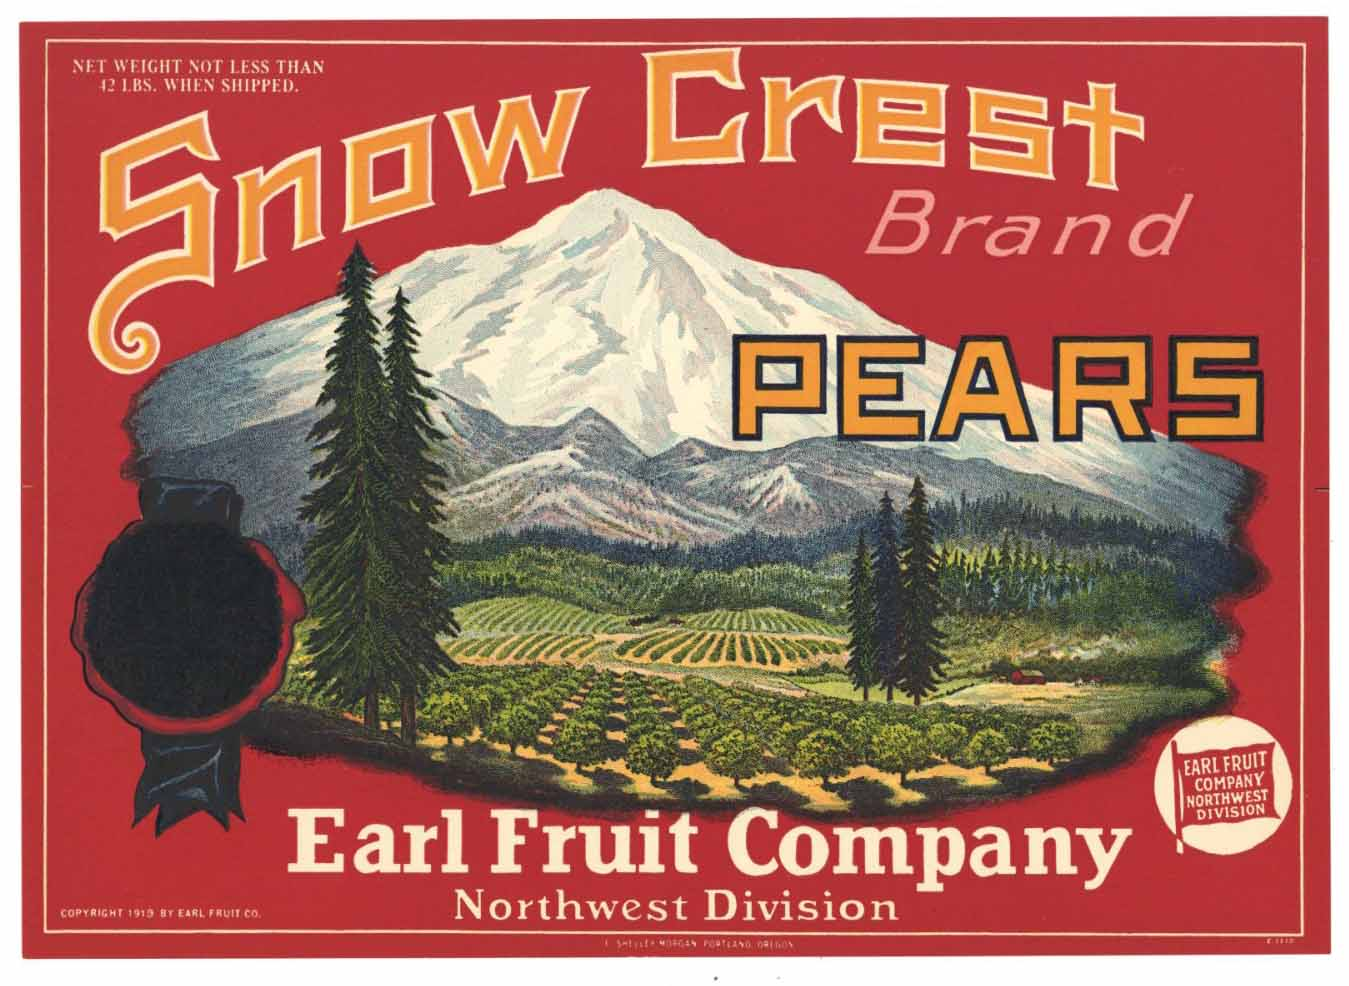 SNOW CREST Brand Vintage Pear Crate Label r (P211A)